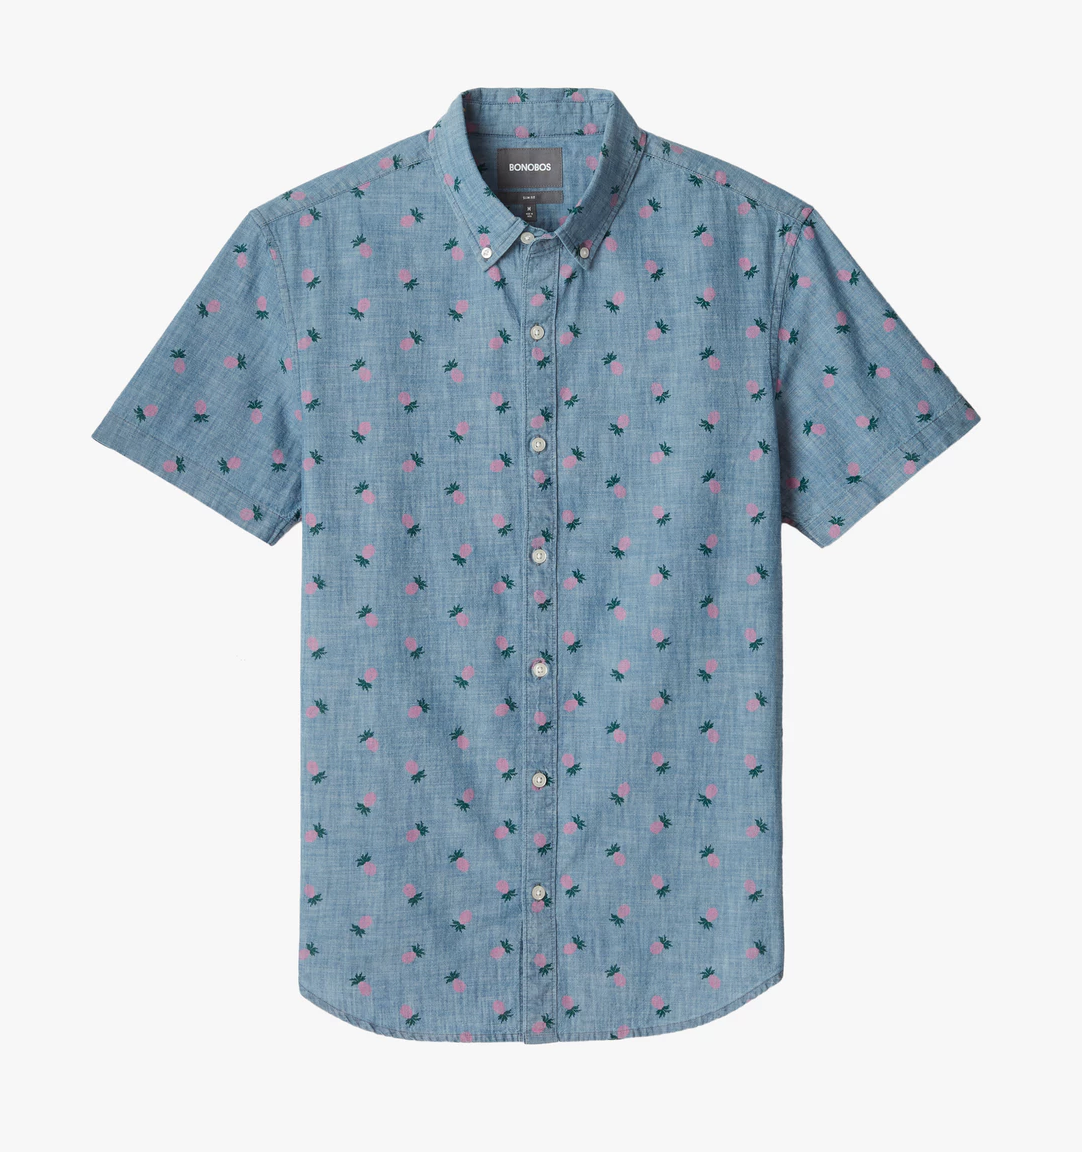 Bonobos Short Sleeve Riviera Shirt, Pink Pineapple - RUST & Co.